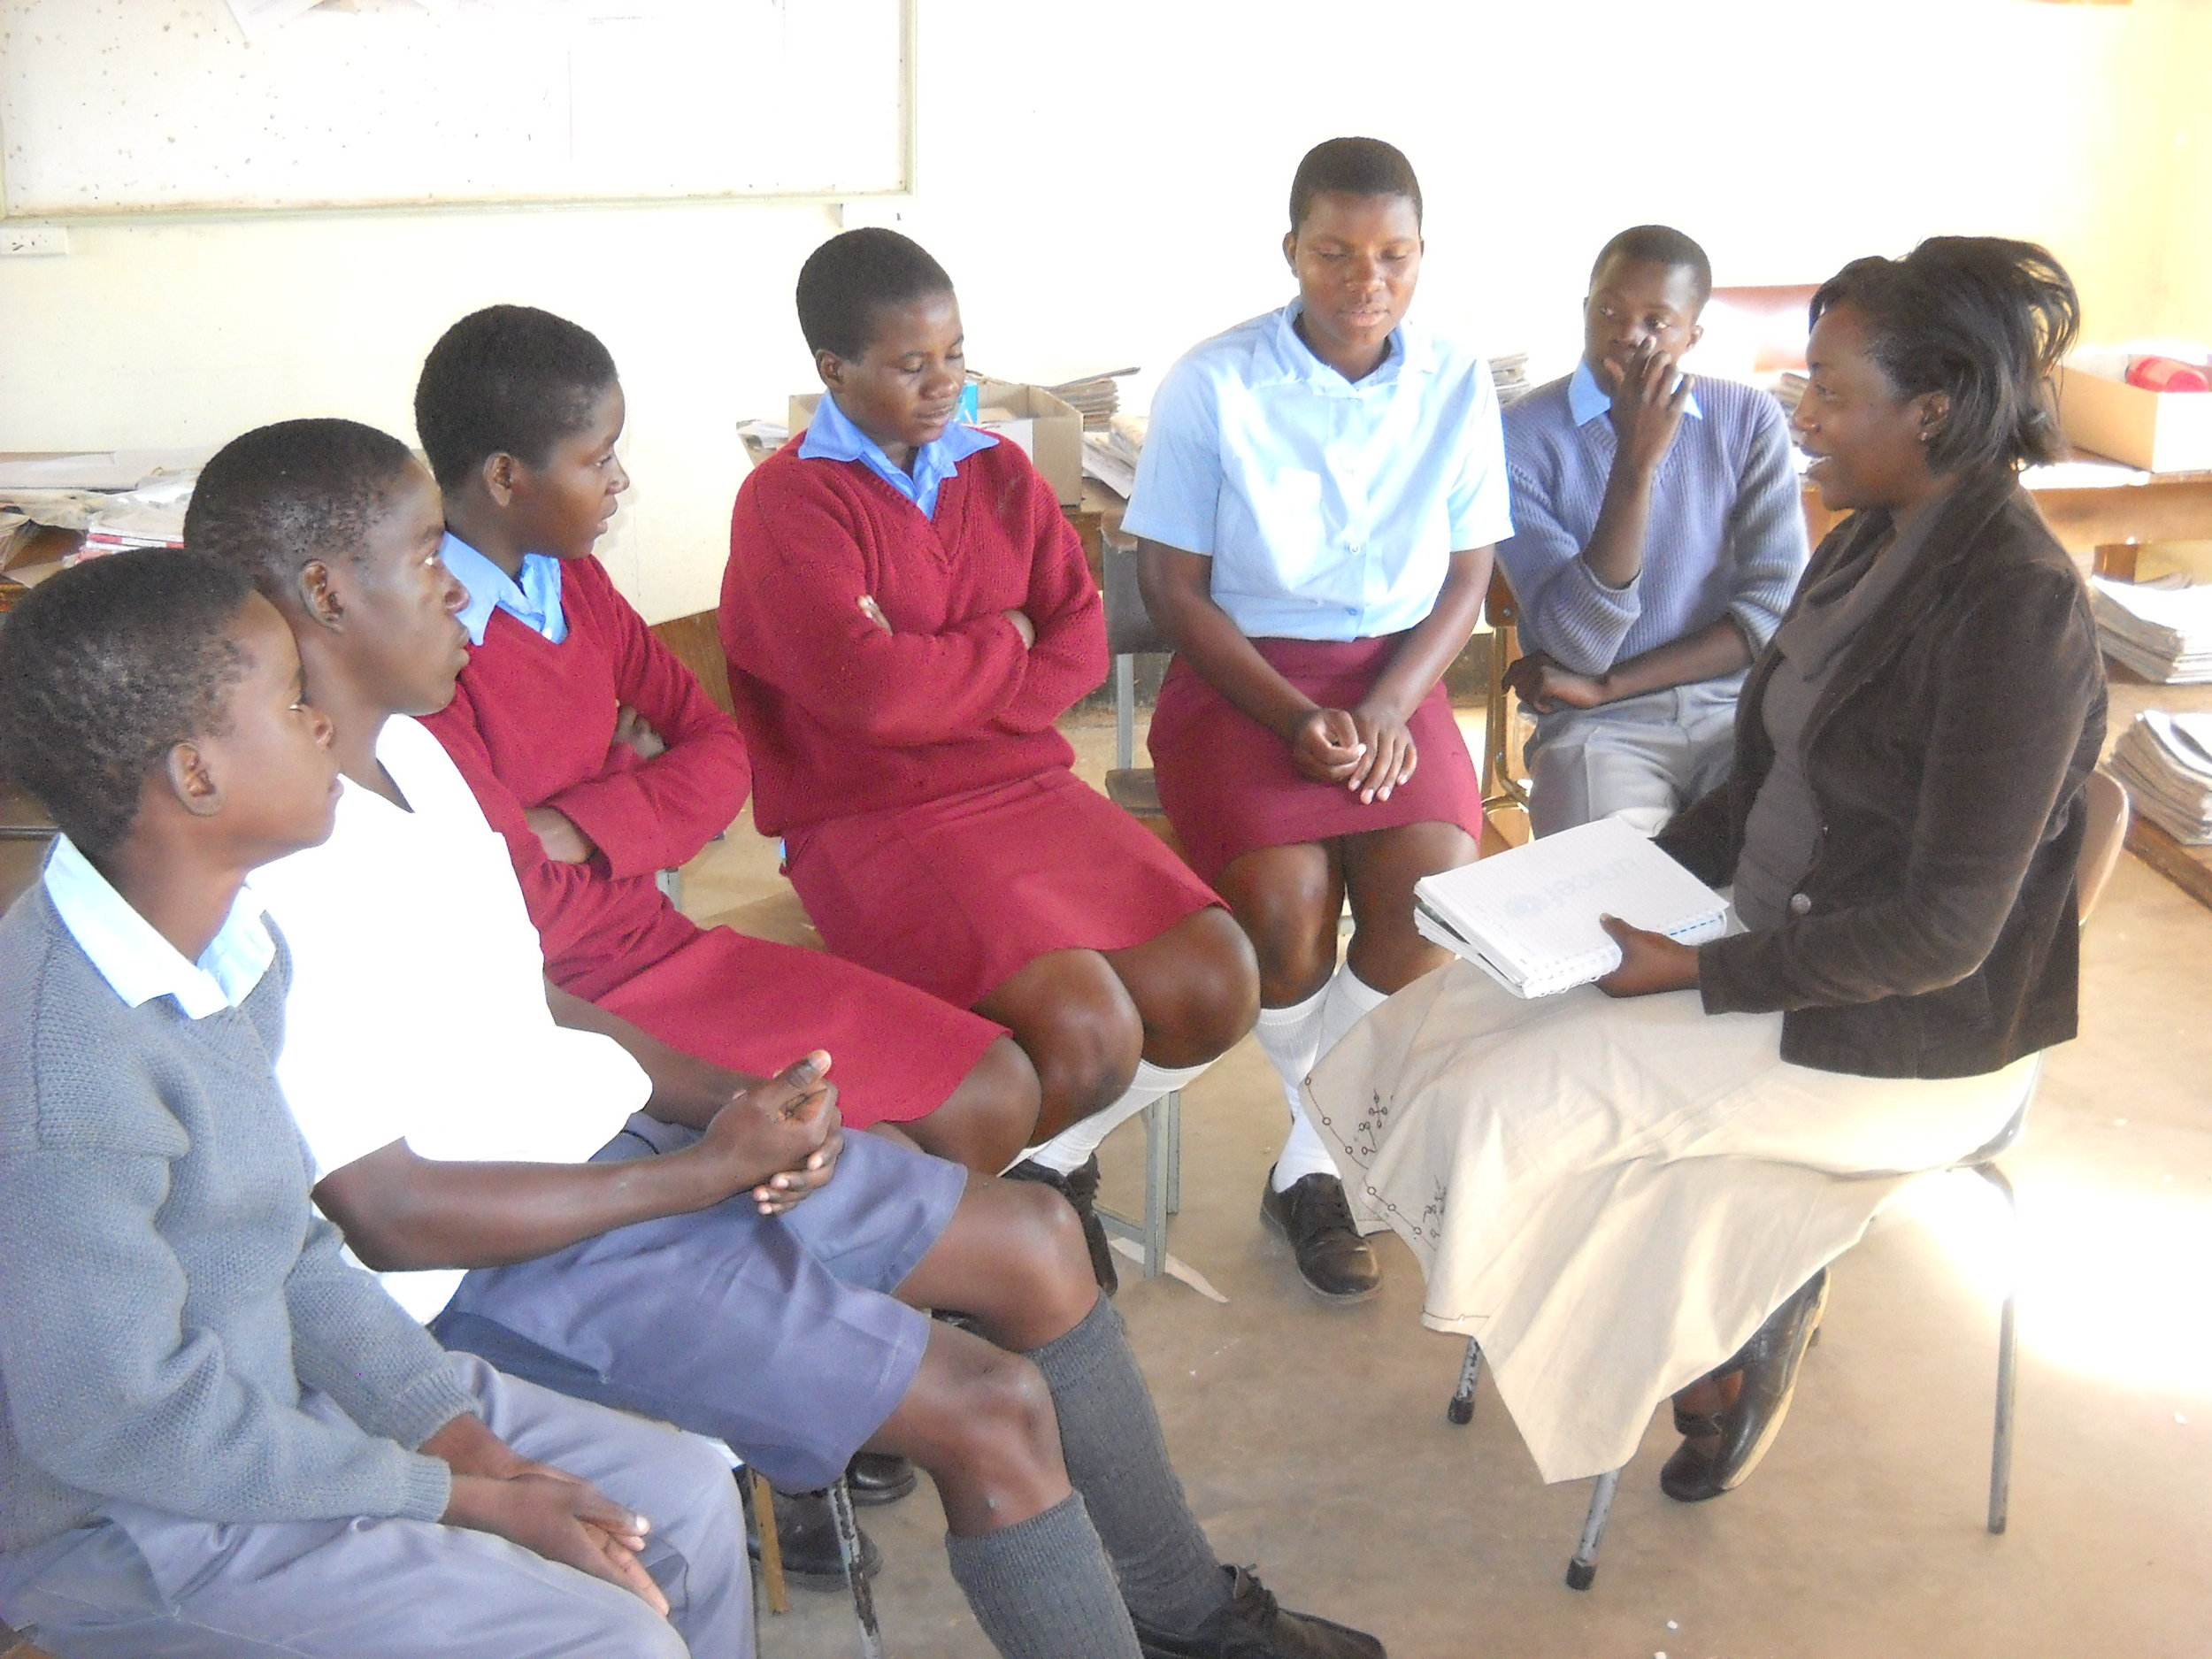 Six African children sit in a classroom wearing school uniforms and talking with an adult African woman